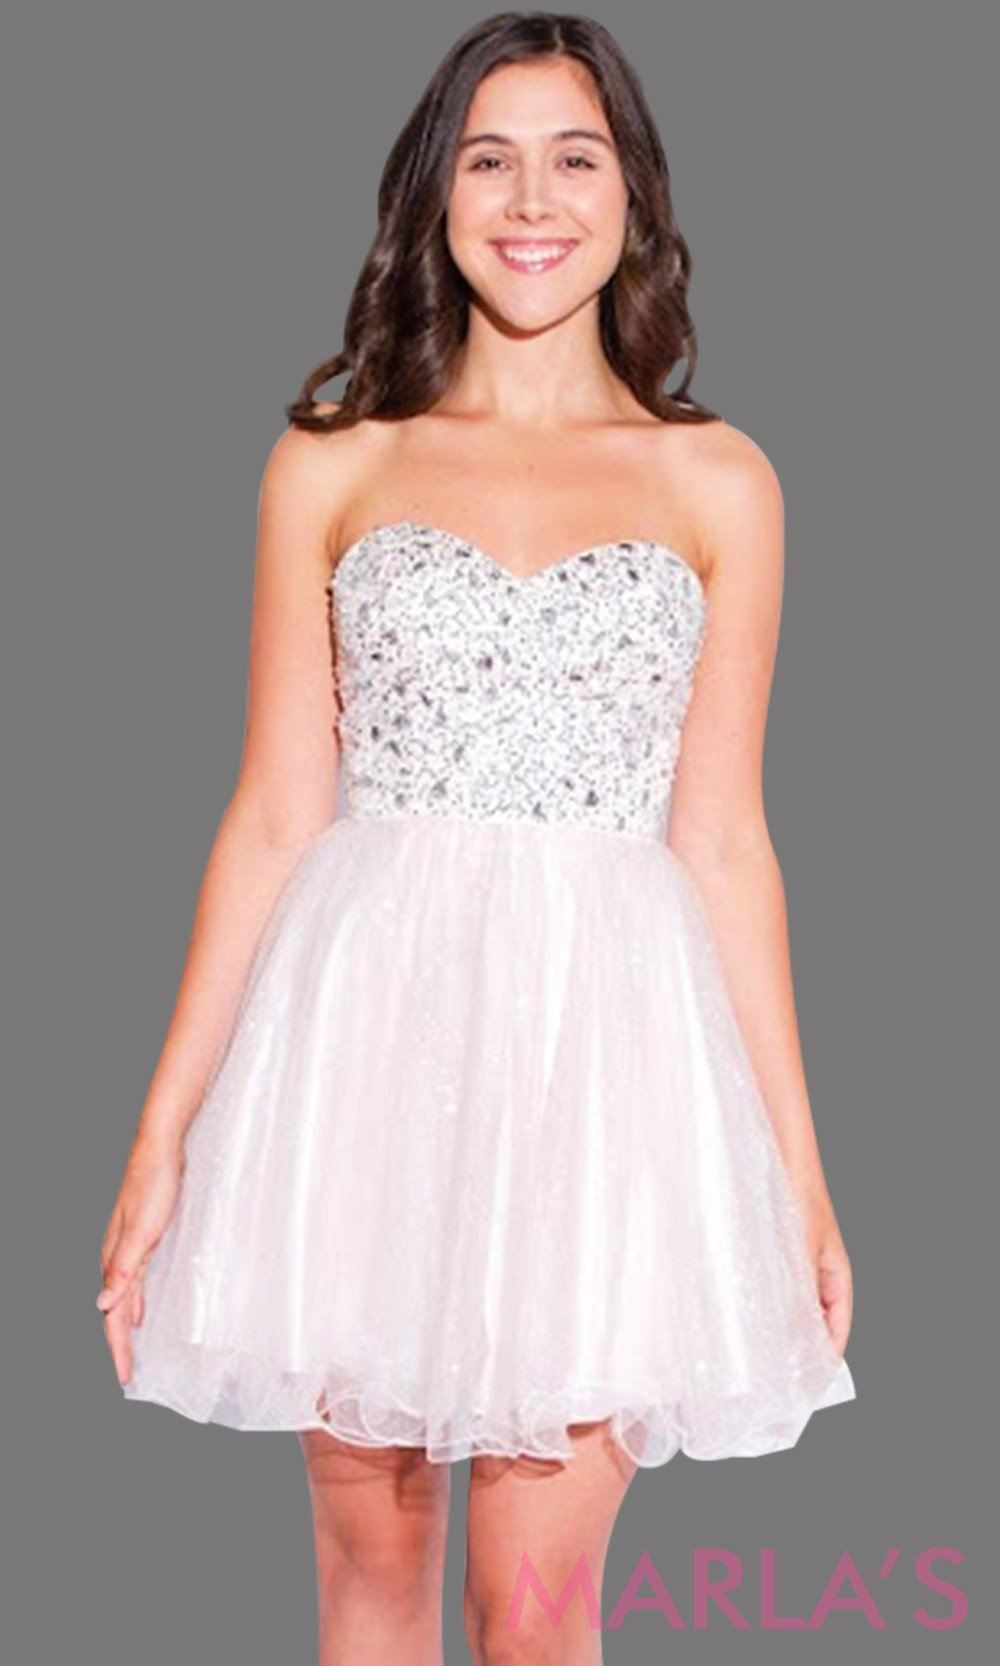 fc56c02275 Short blush pink graduation dress with rhinestone bodice. It has puffy  tulle skirt. Perfect for grade 8 grad